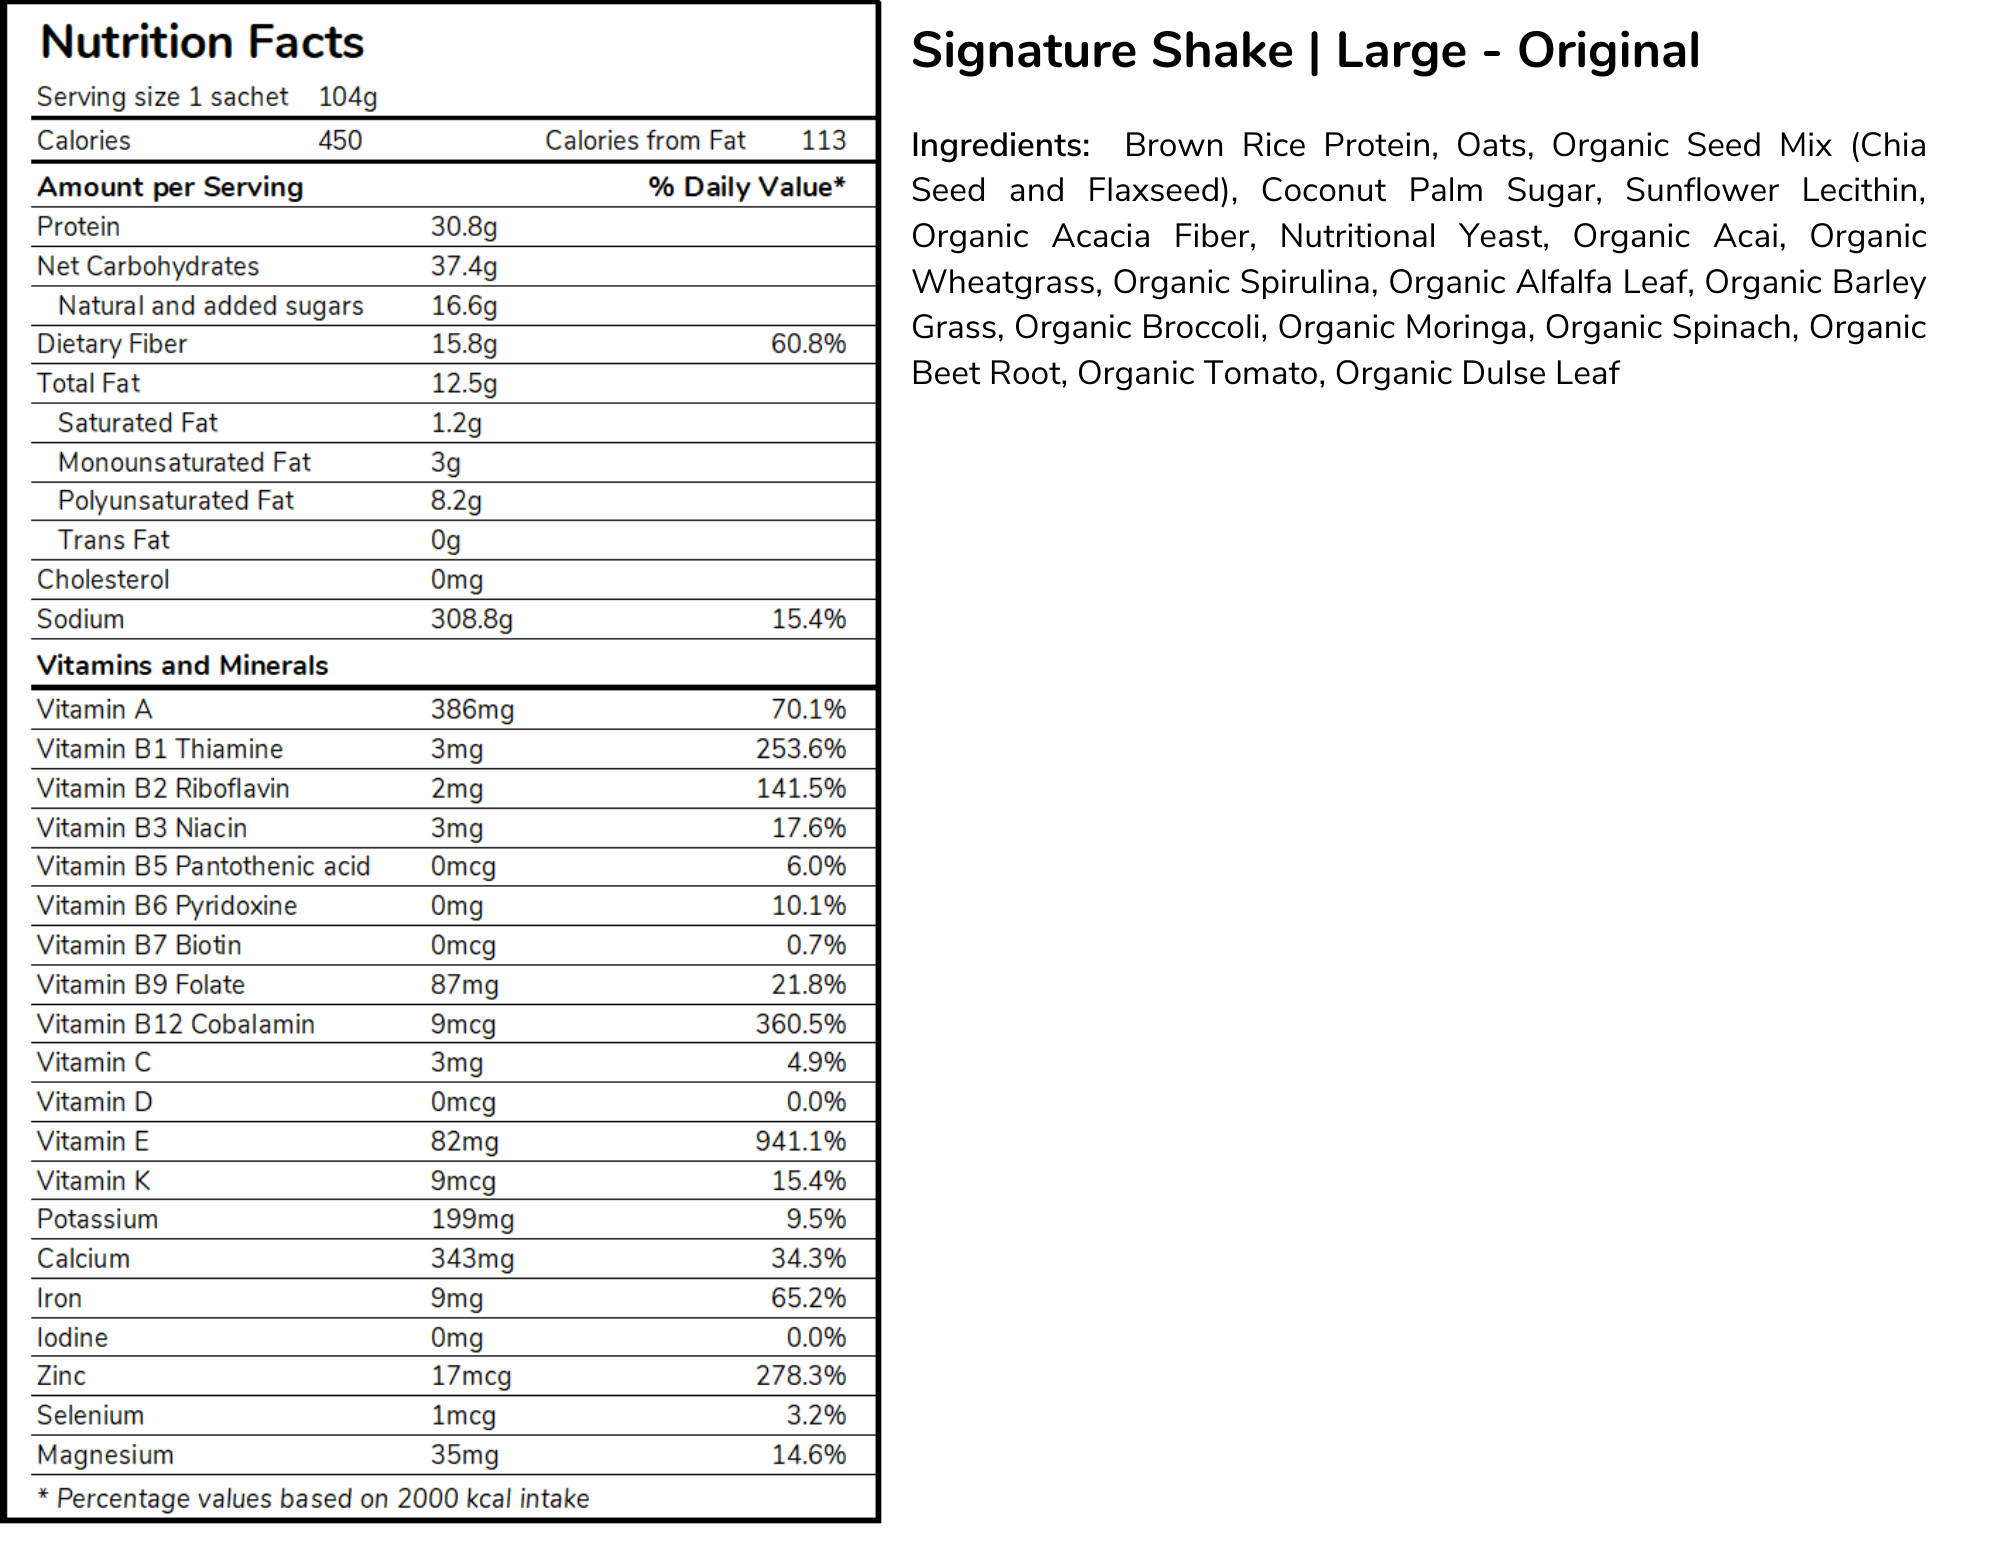 Signature meal replacement shakes large size standard formula nutritional panel